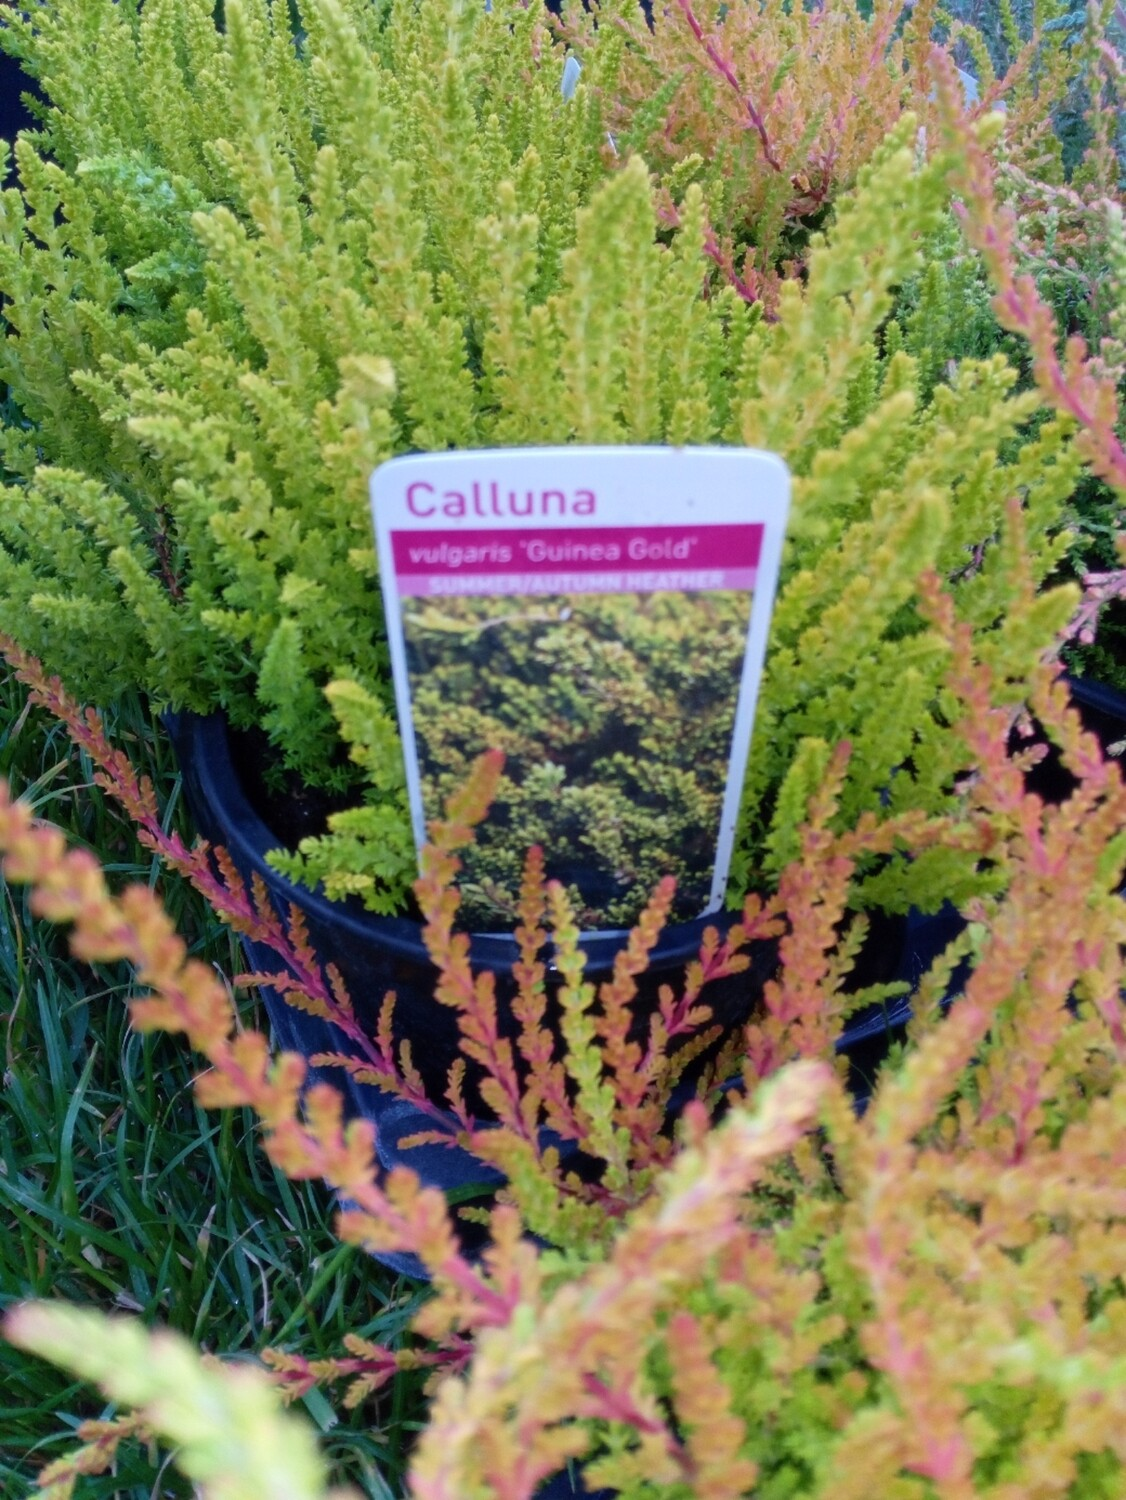 Calluna/Heather